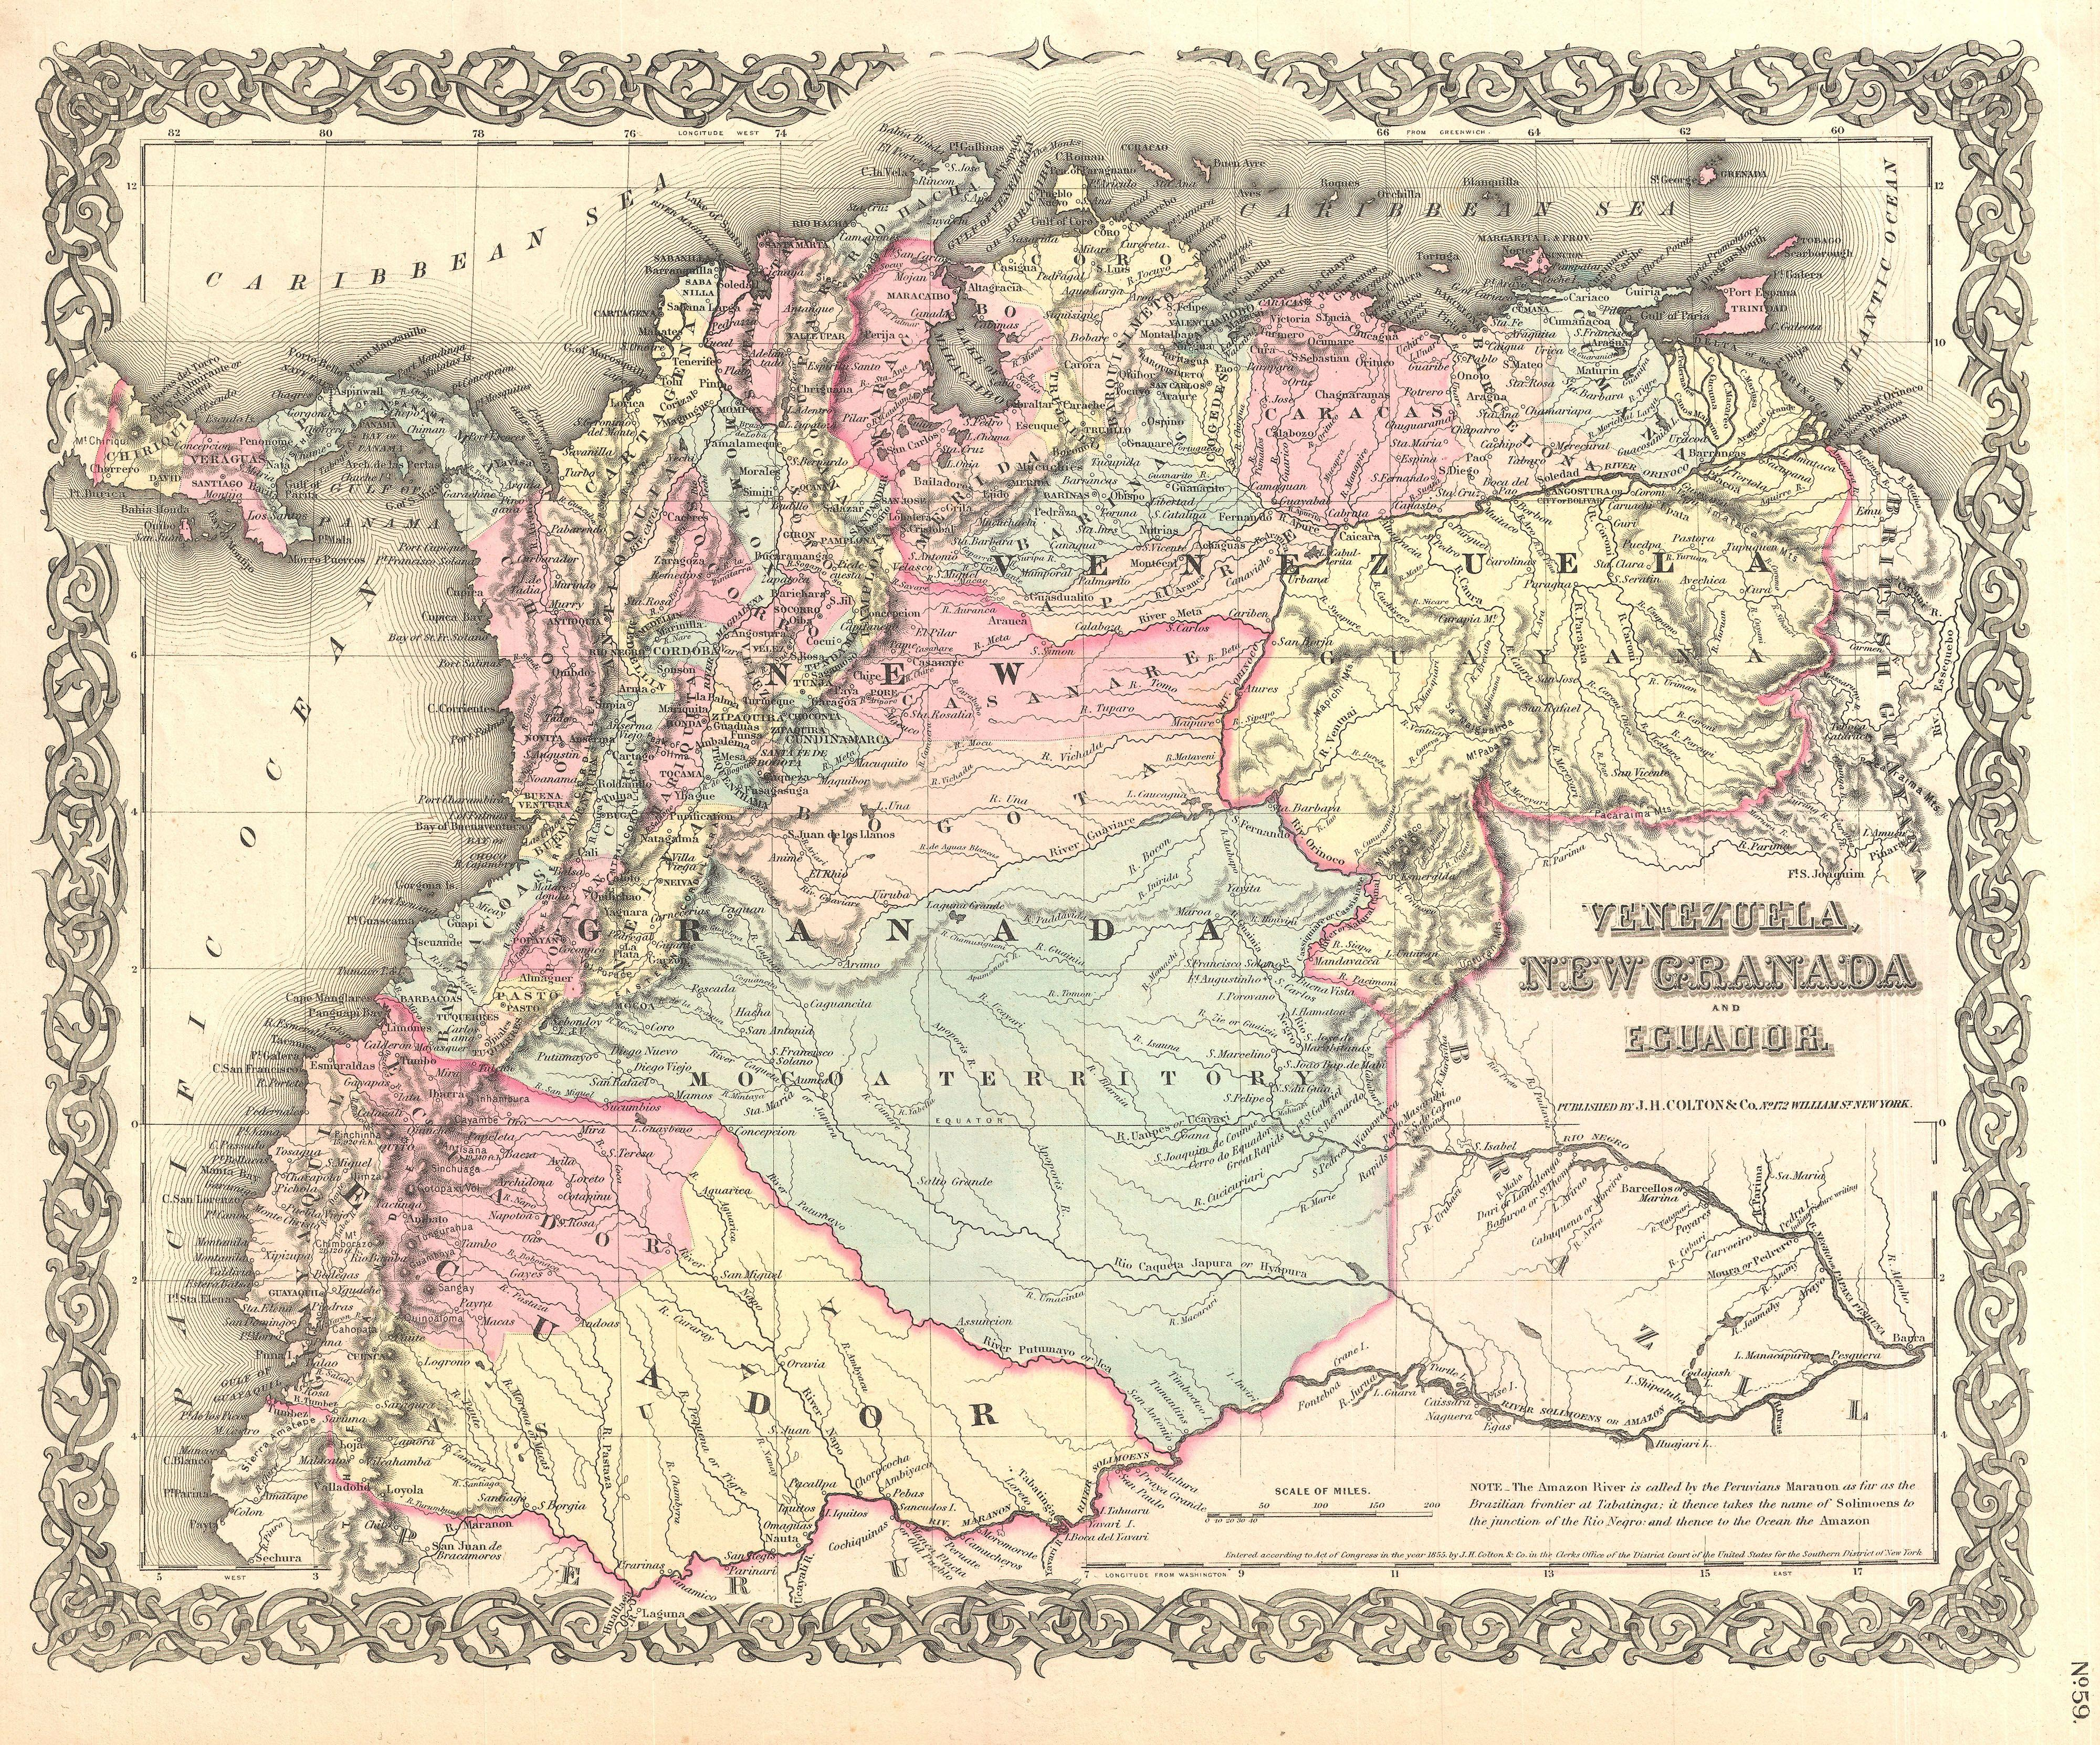 south american tribes photos with File 1855 Colton Map Of Columbia  Venezuela And Ecuador   Geographicus   Venezuelacolumbia Colton 1855 on Shapeshifters further Mihaela Noroc Women In Atlas Of Beauty besides Tribes Of The Great Plains  prehension Activity together with Mount Adams  Washington in addition Wetal 26 2.